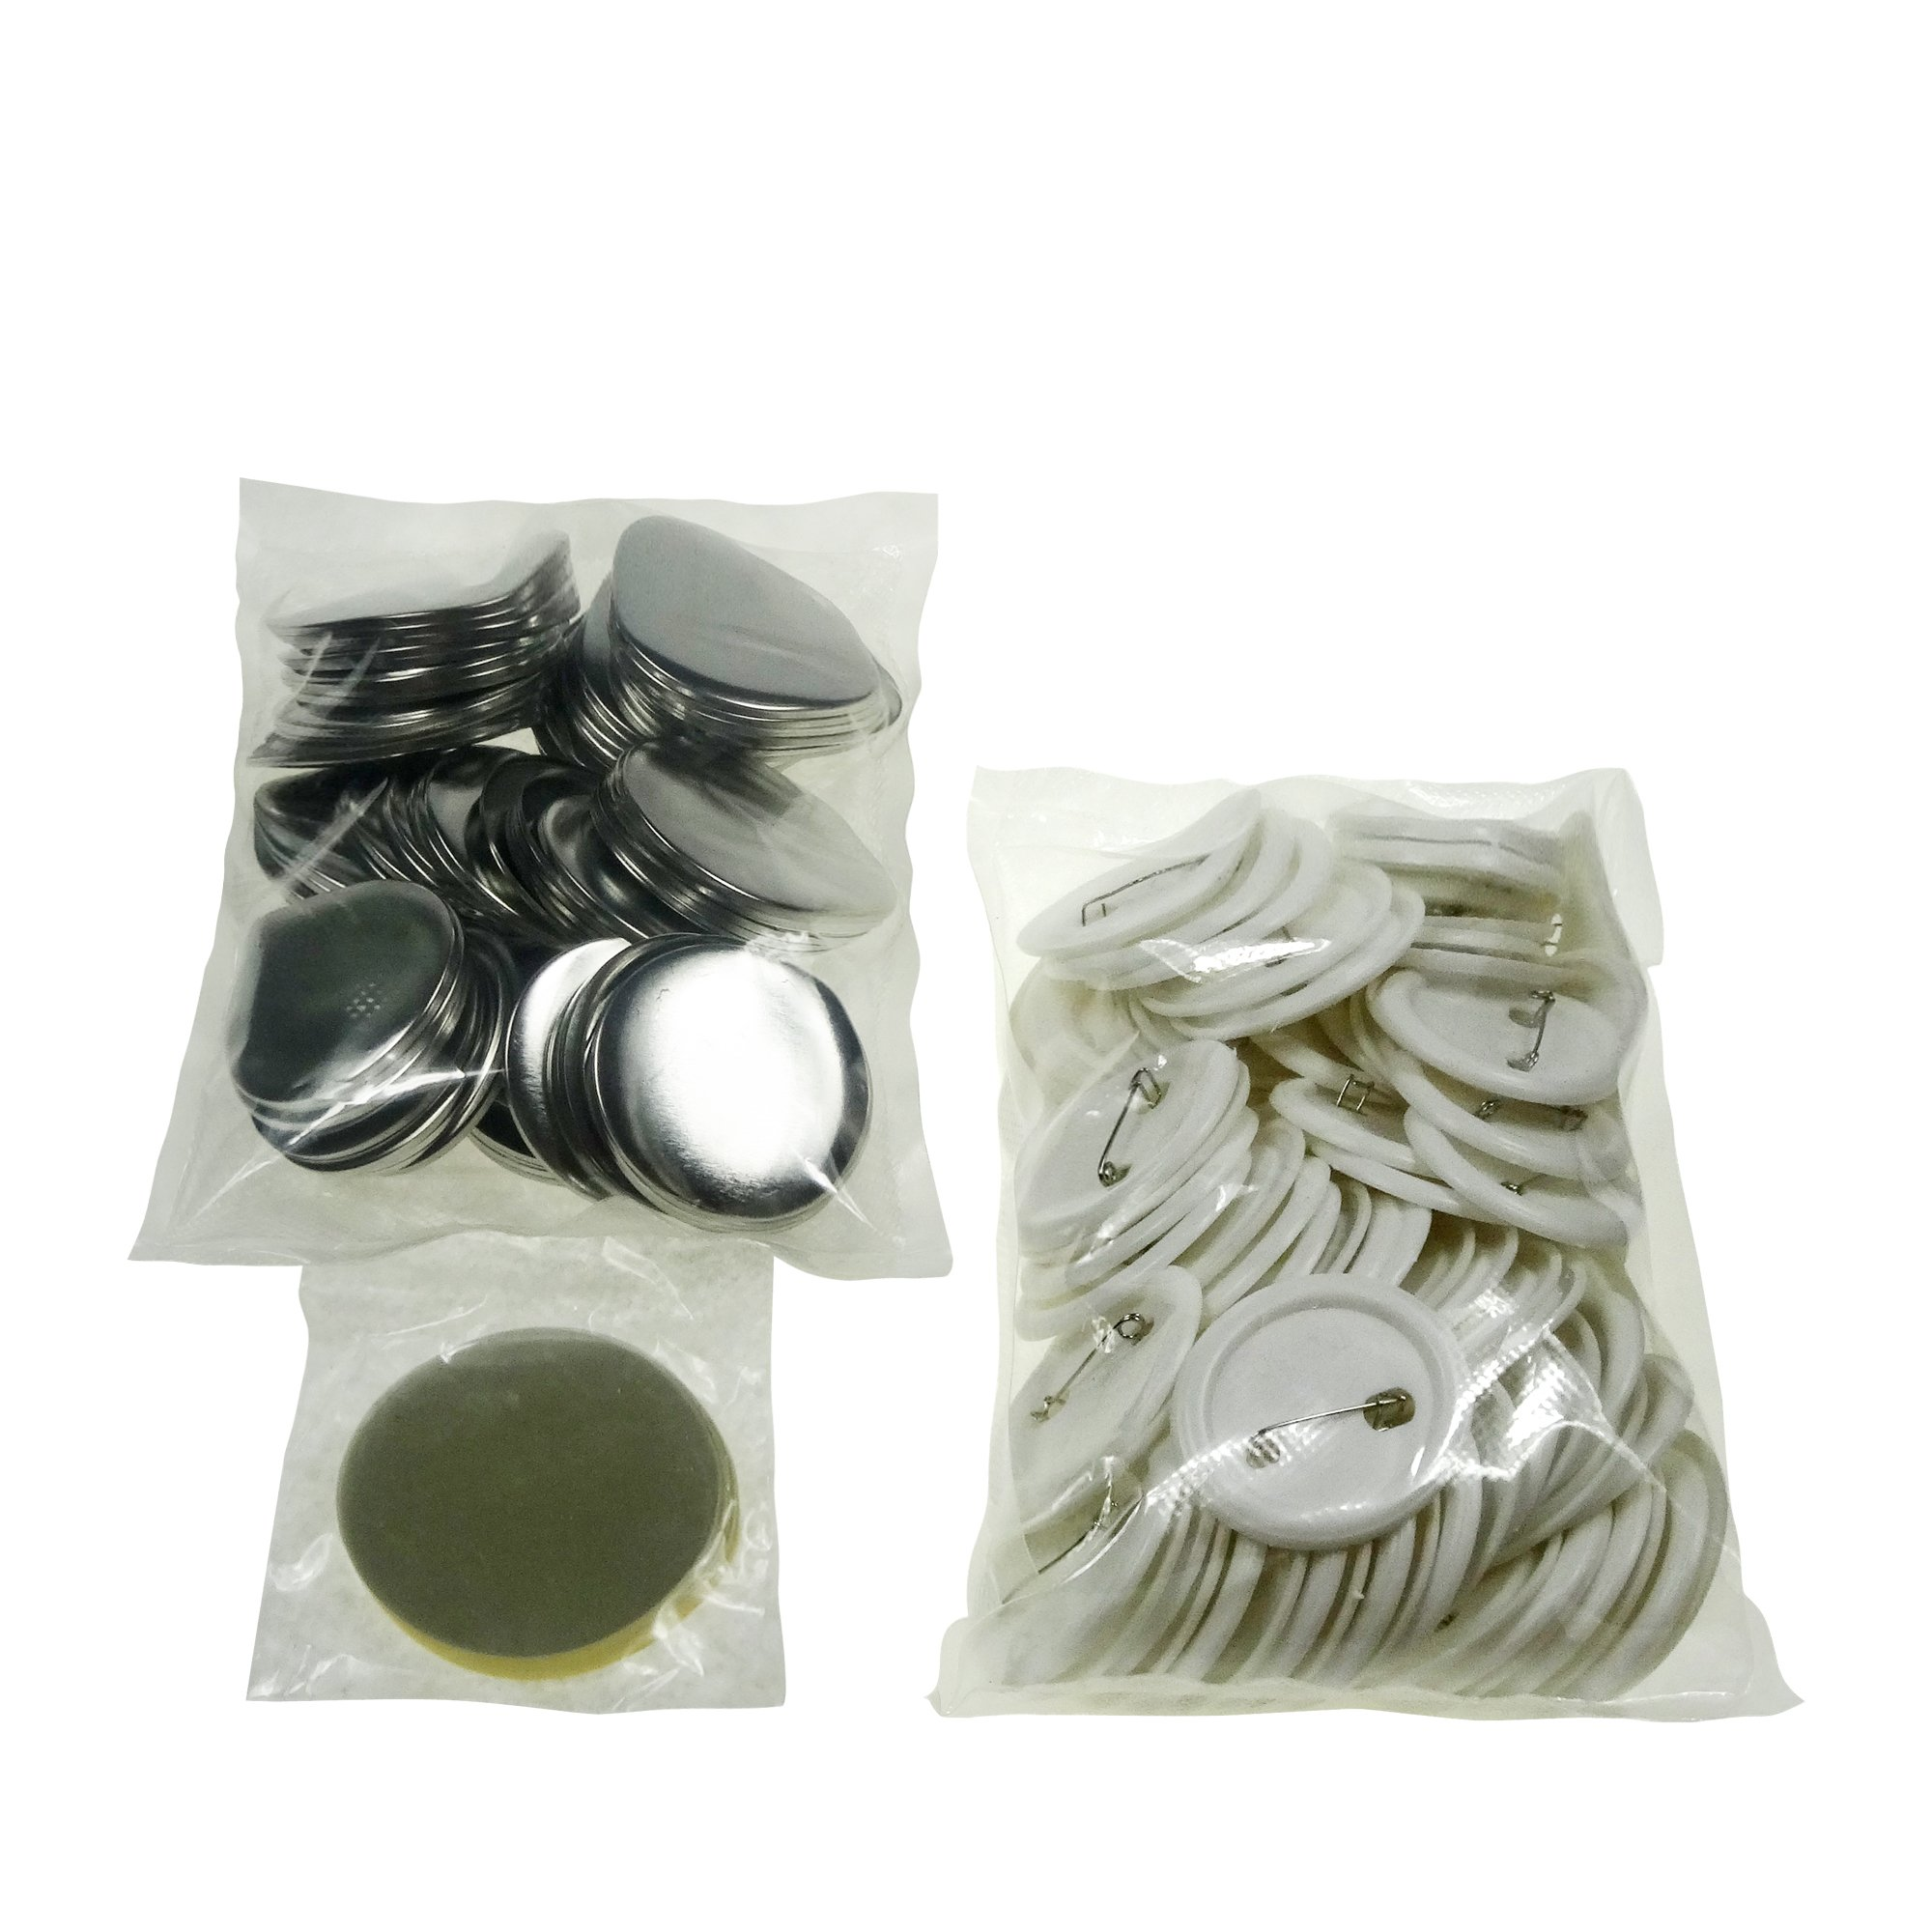 Sunshine 50mm Blank Badges & Buttons Parts for Badge